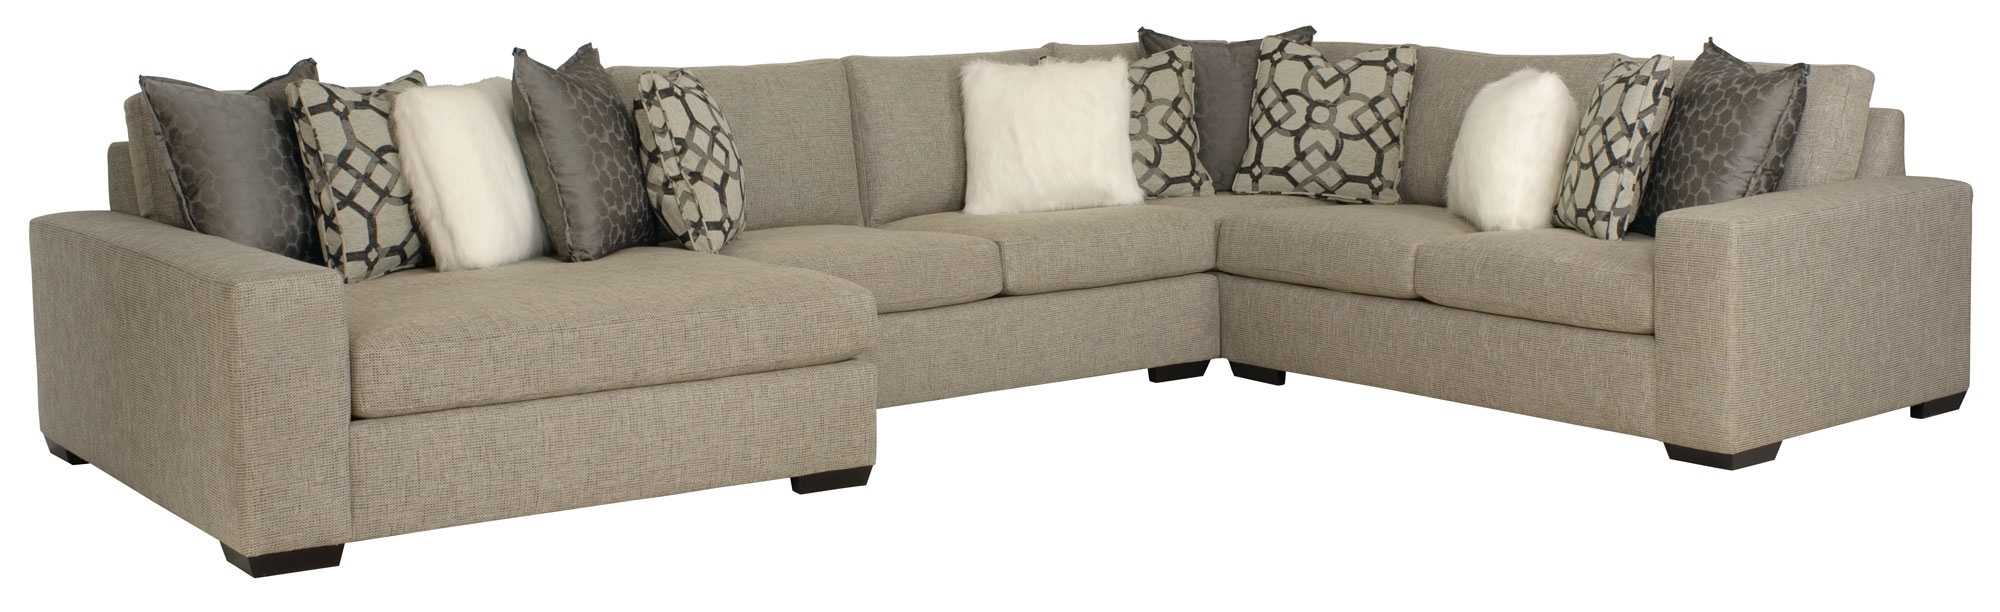 Most Current Jackson Tn Sectional Sofas Intended For Best Bernhardt Sectional Furniture Gallery – Liltigertoo (View 11 of 20)